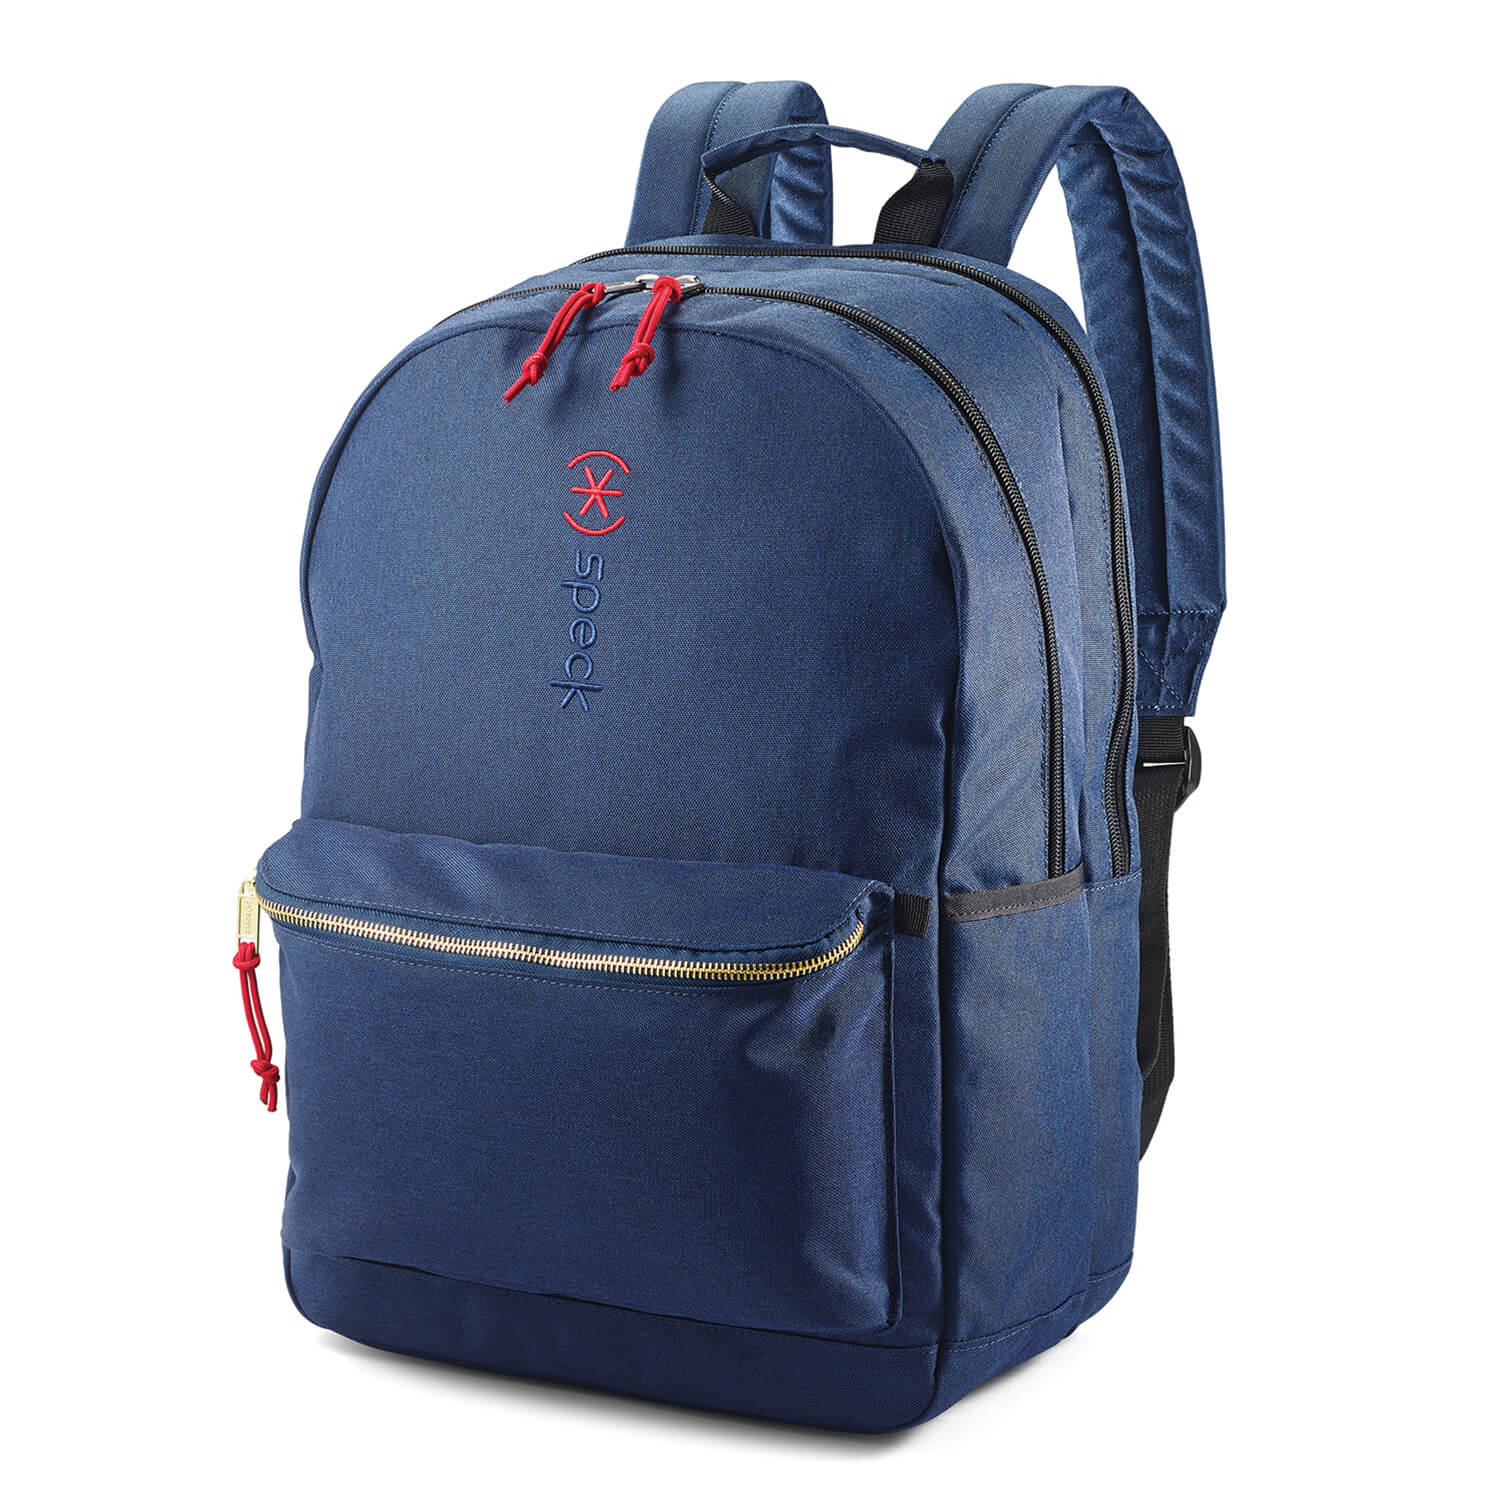 Compare prices for Speck 3 Pointer Backpack Navy